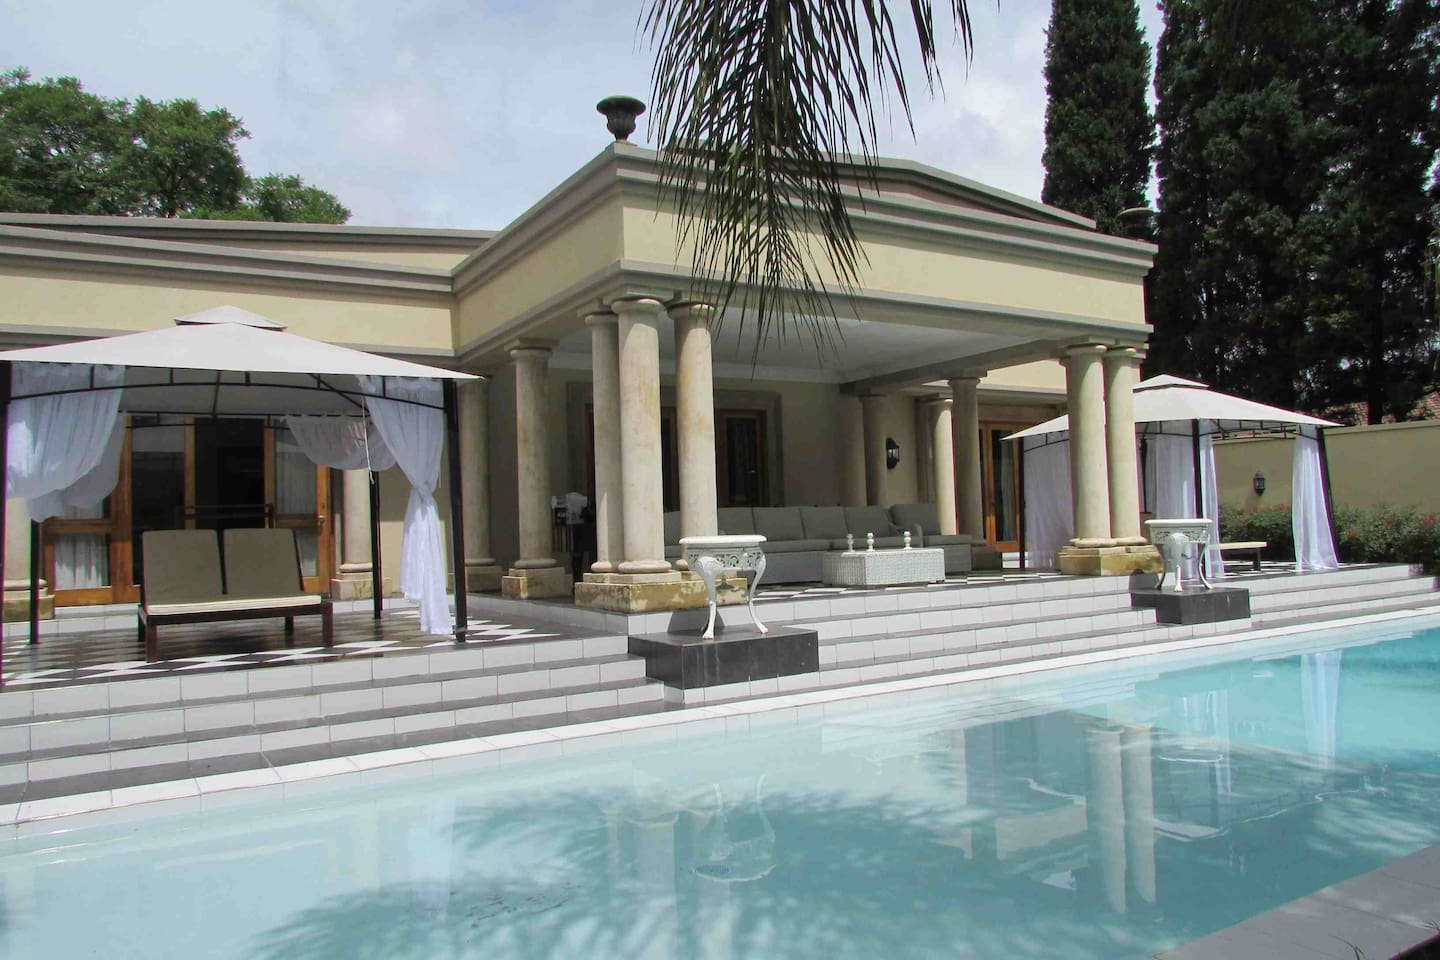 Private pool and gazebos